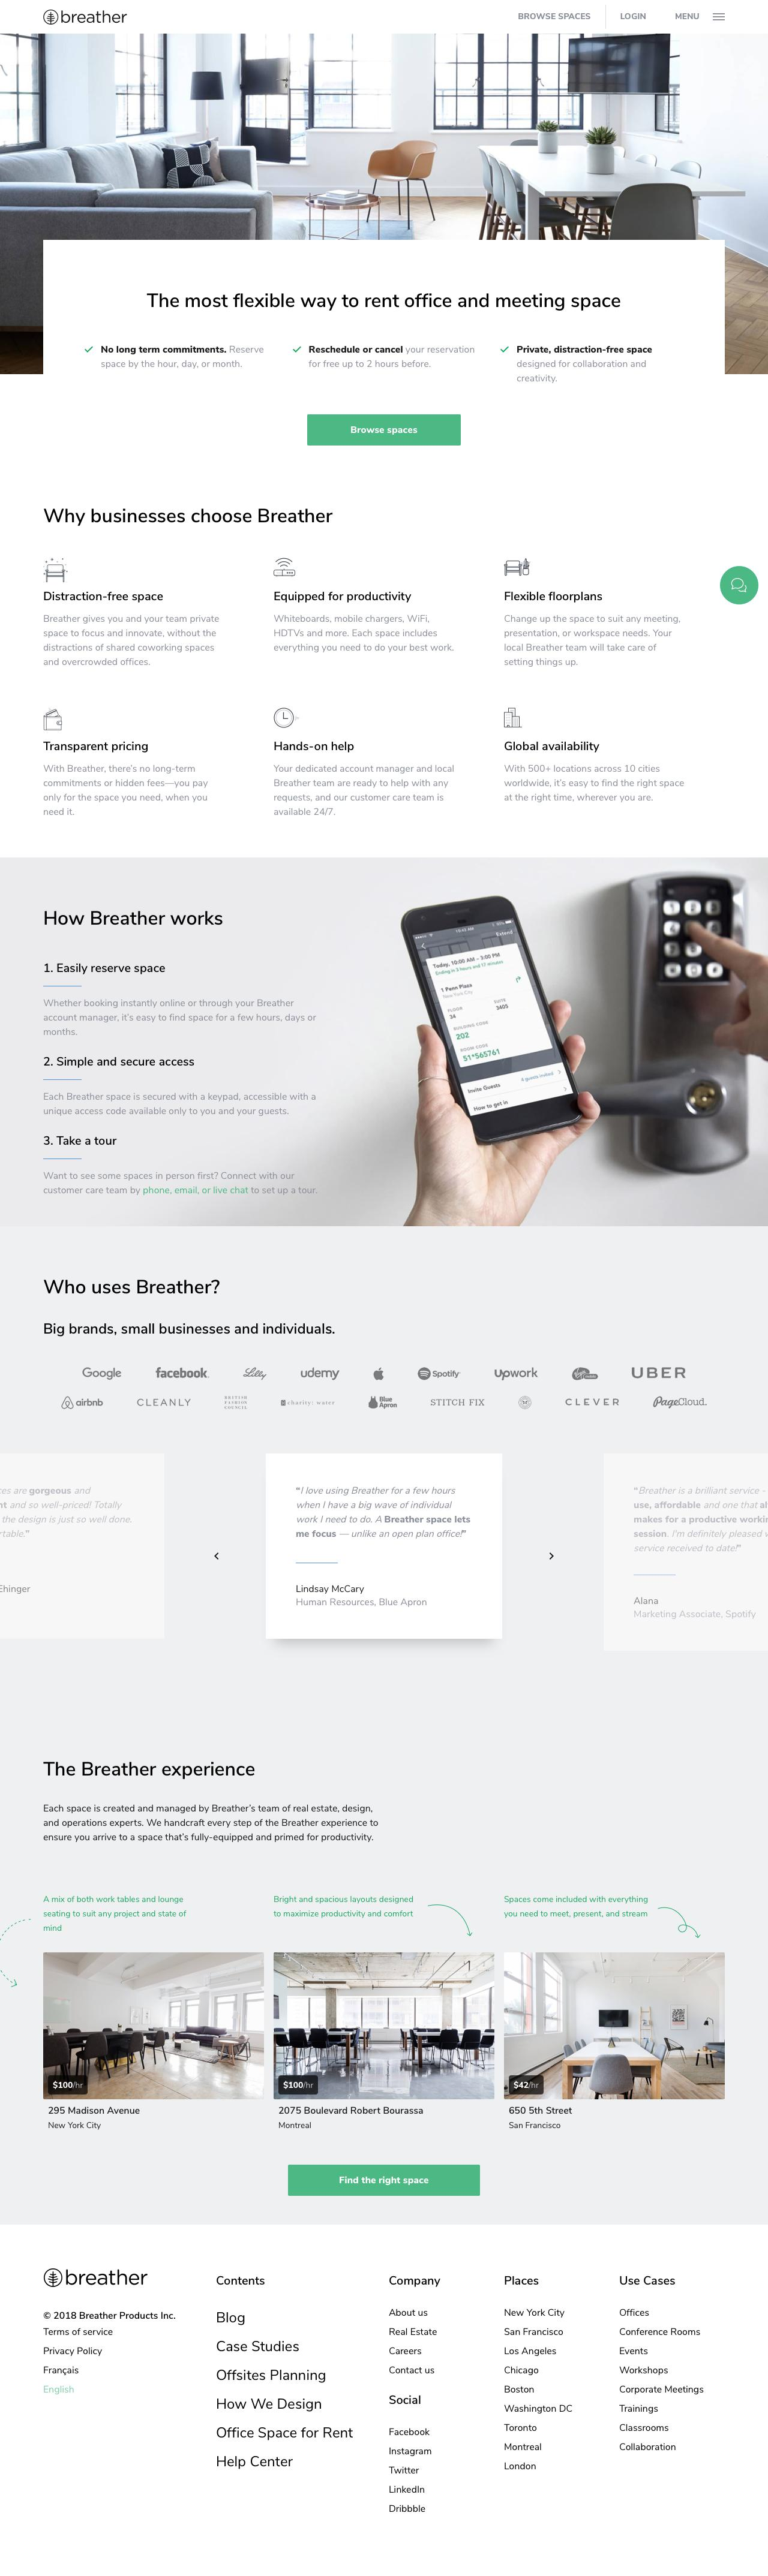 Screenshot of breather.com - Breather - A space to work, meet and focus - captured May 26, 2018